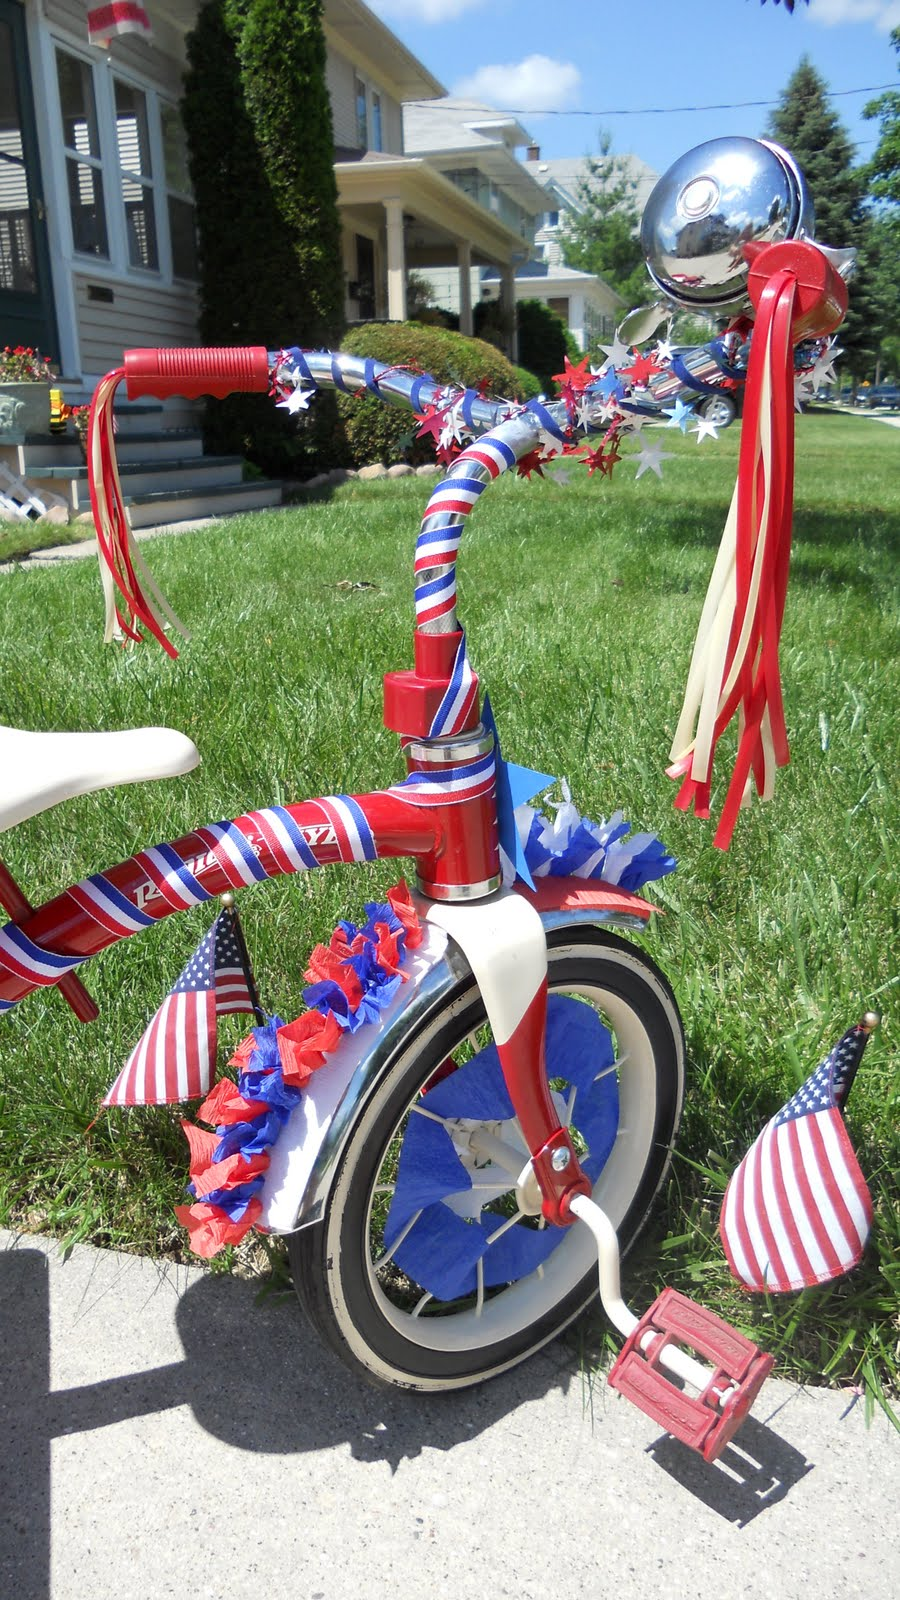 Decorate Bicycles and Go for a Bike Ride - Here are some fun ideas for decorating your child's bicycle. How to Decorate a Bike for a Parade - This website will show your kids different ways to decorate your bicycle for a parade. Ideas on Decorating a Bike - This summer, decorate your bicycle with stickers, streamers, baskets etc.